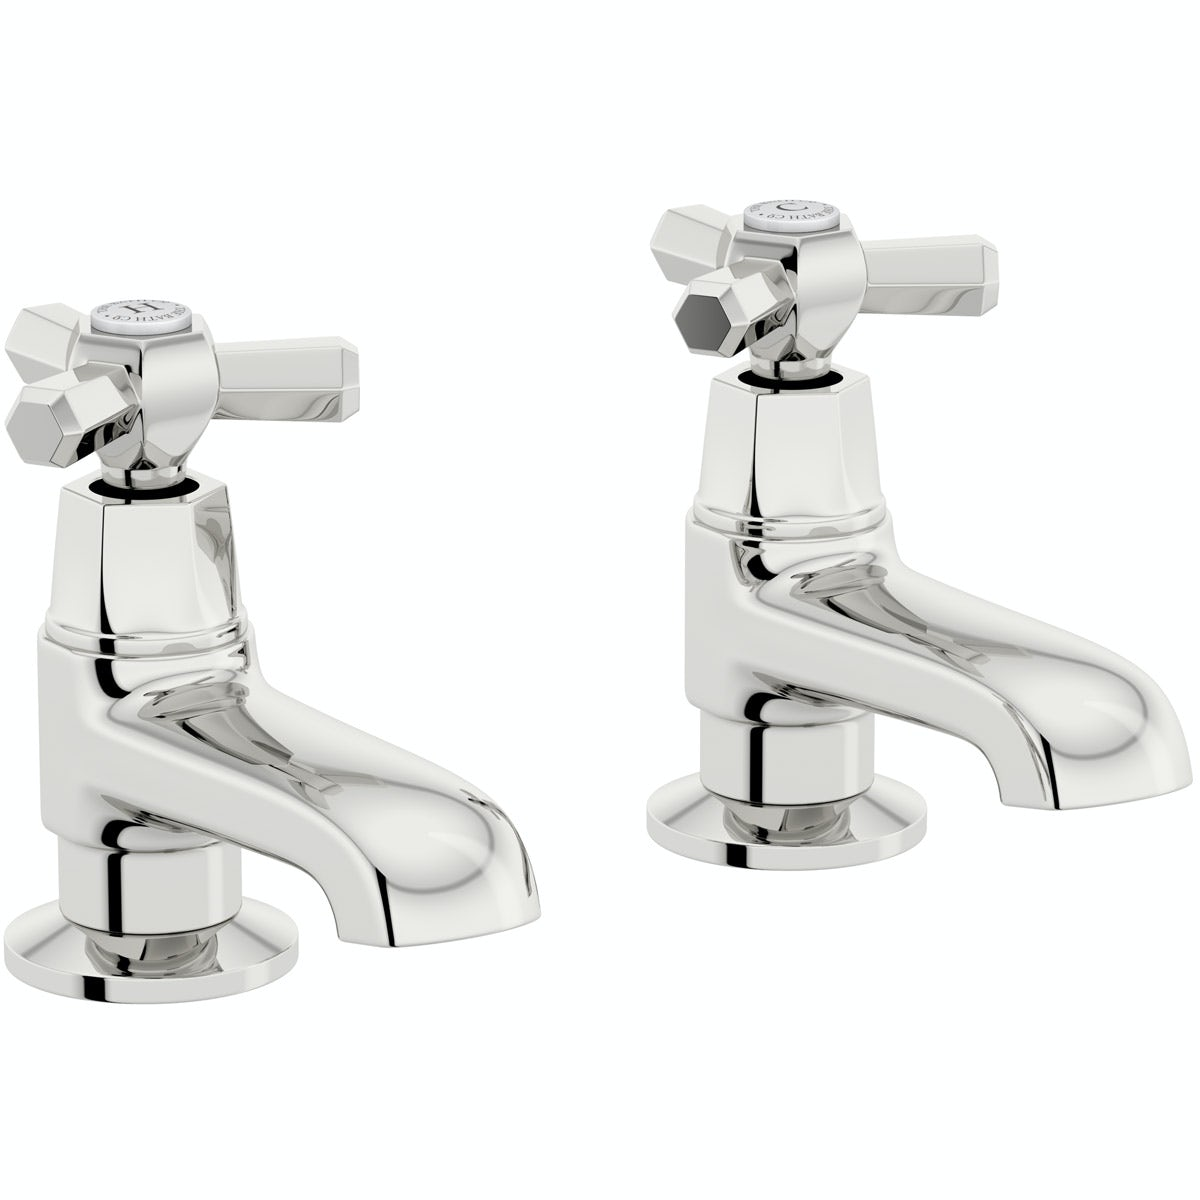 The Bath Co. Beaumont bath pillar taps